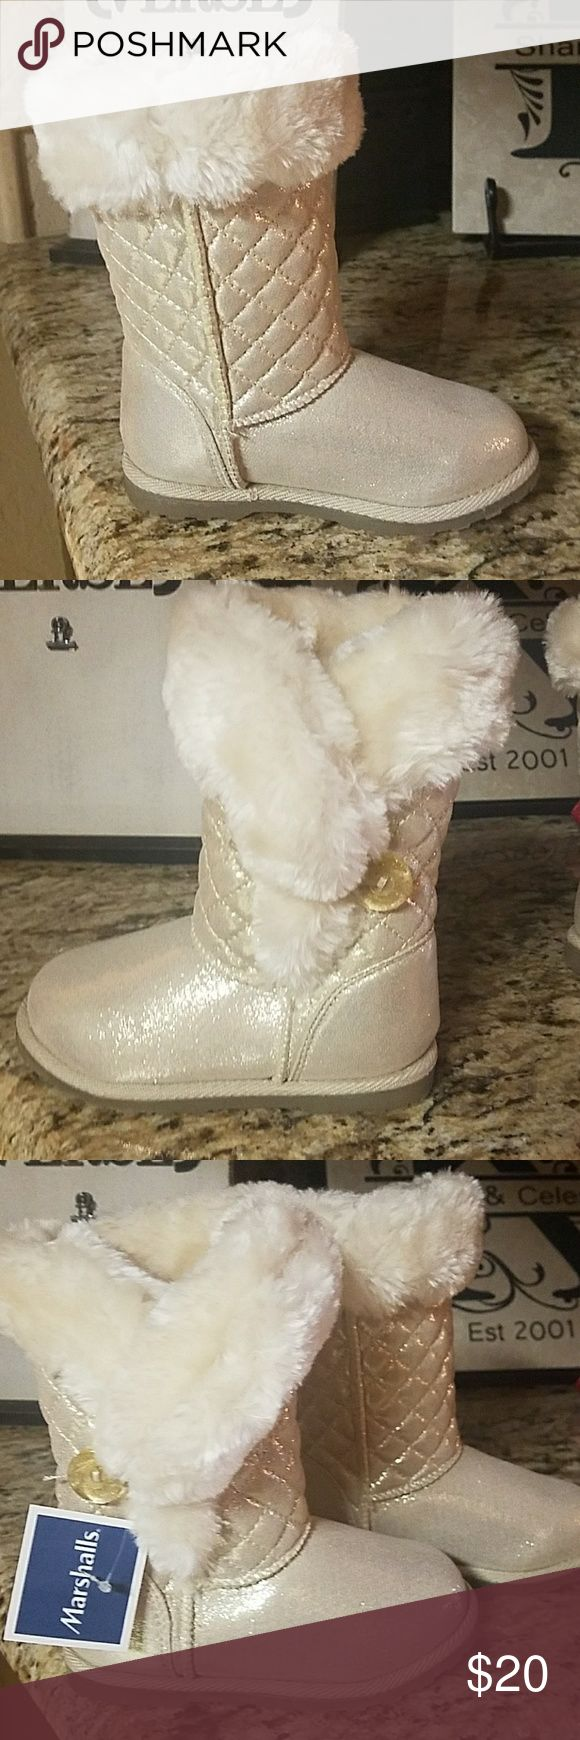 Girls Boots Pretty gold color shimmery fur lined boots, bought at Marshalls, adorable warm comfortable boots. Shoes Boots